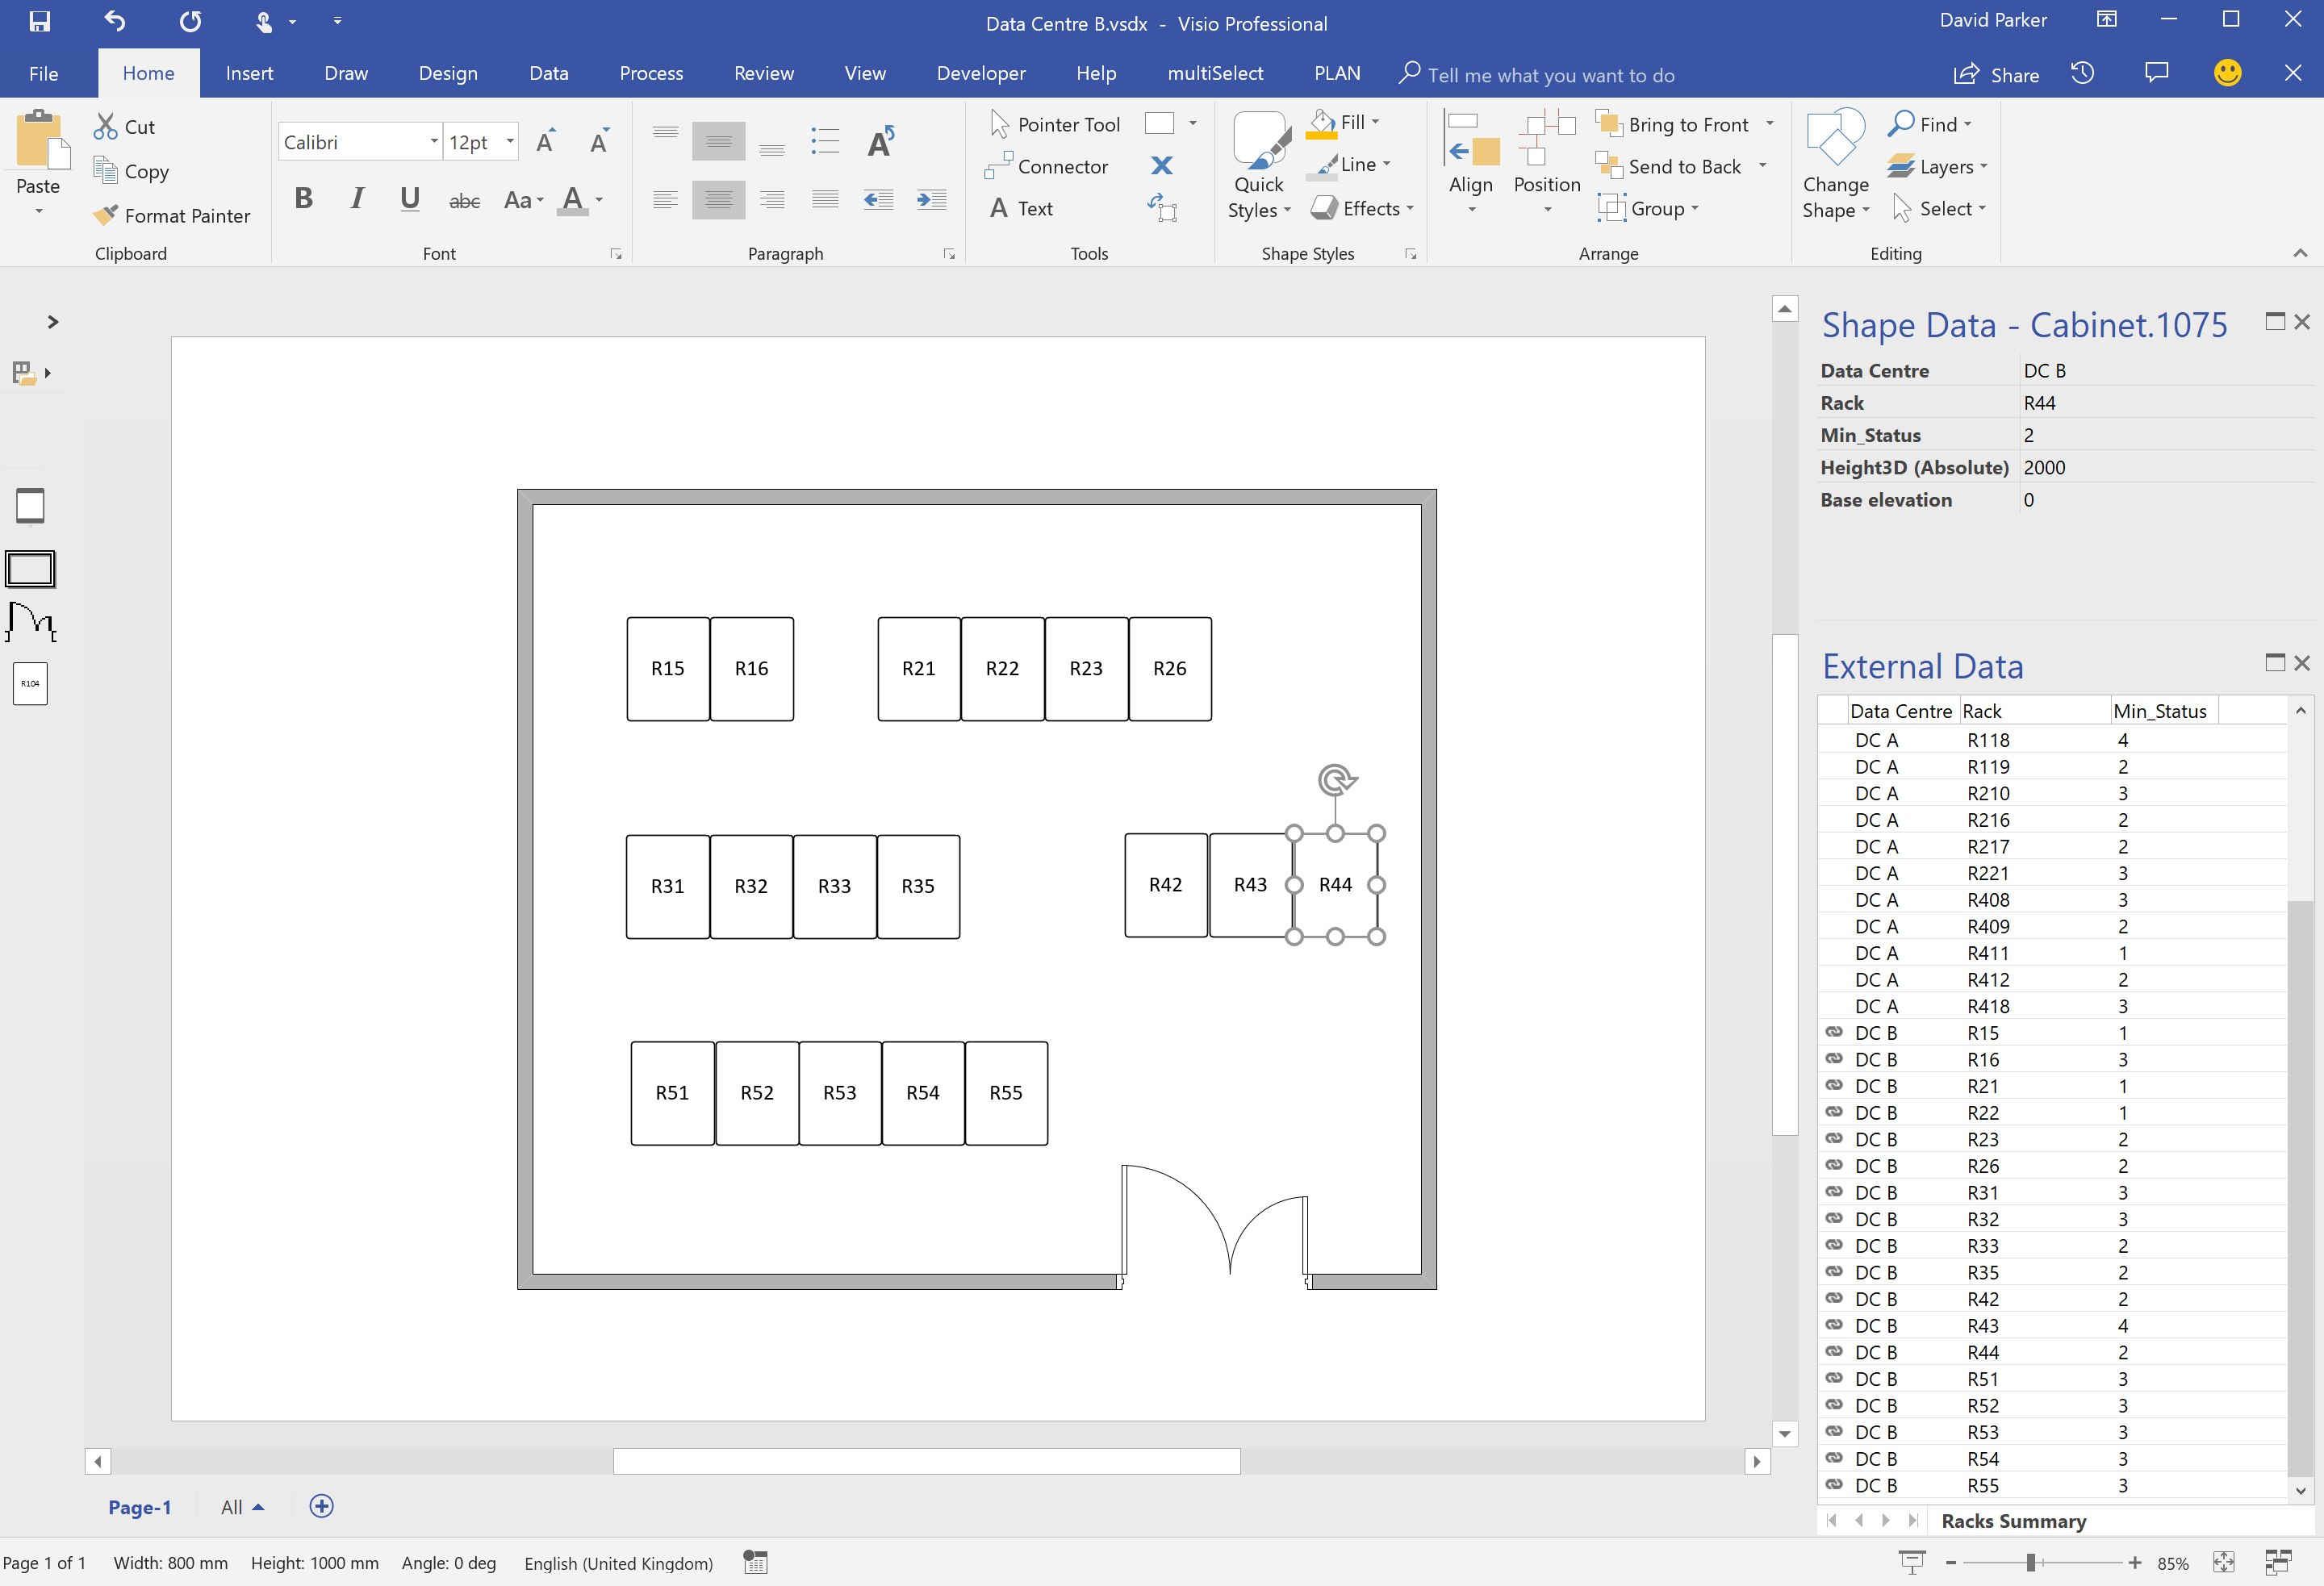 Simple data centre layouts in Visio